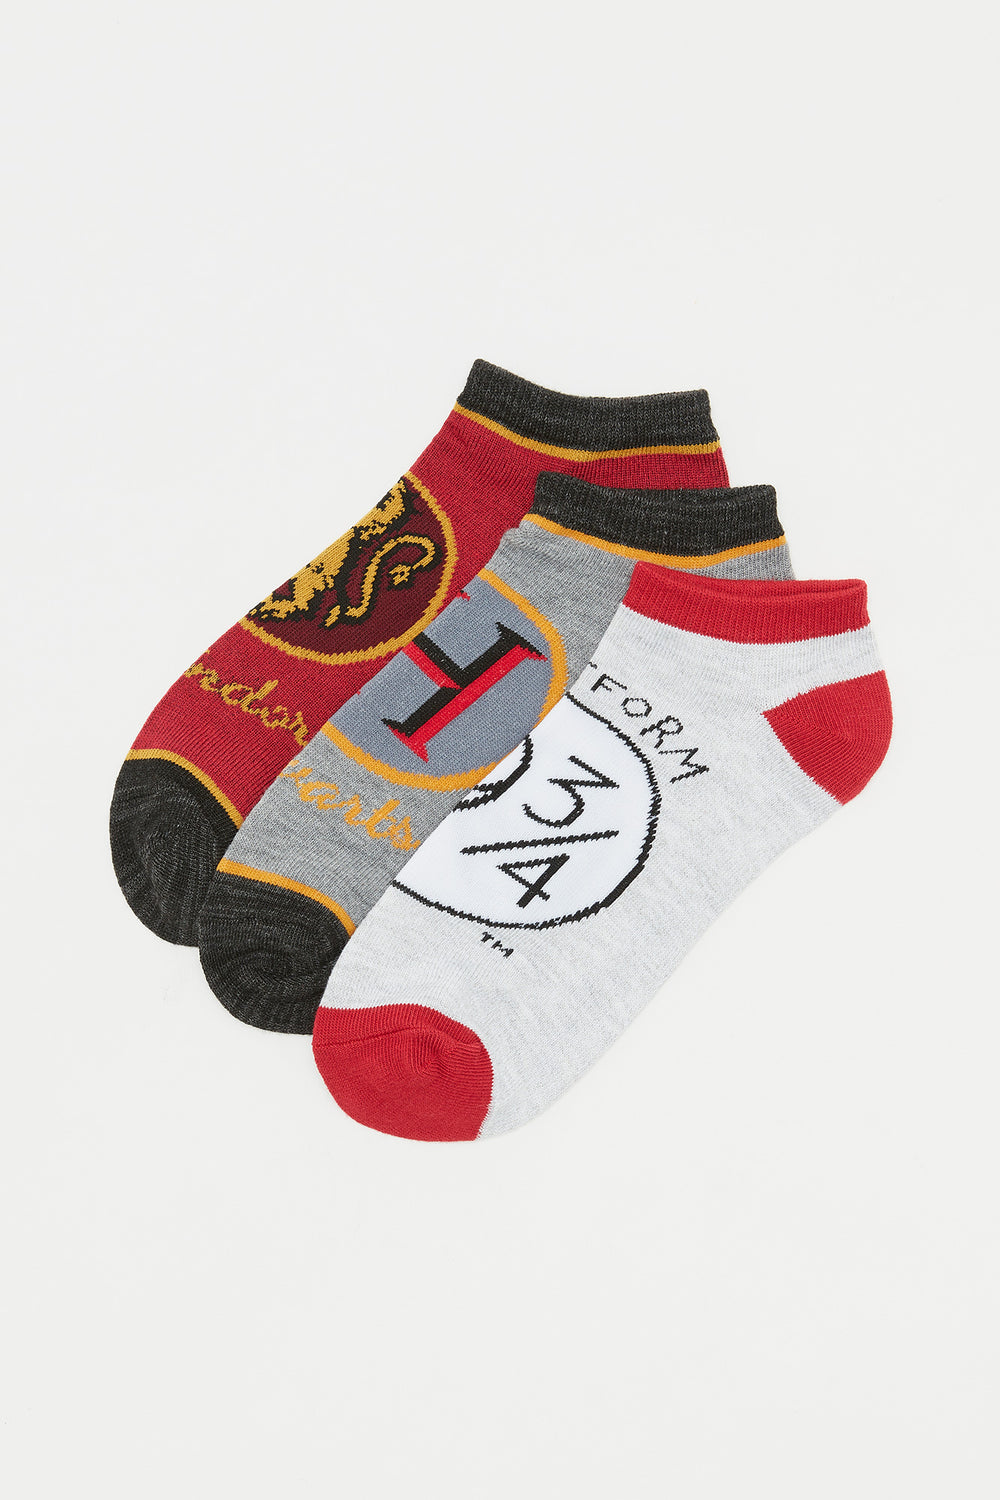 Hogwarts Graphic Ankle Socks (3 Pairs) Assorted